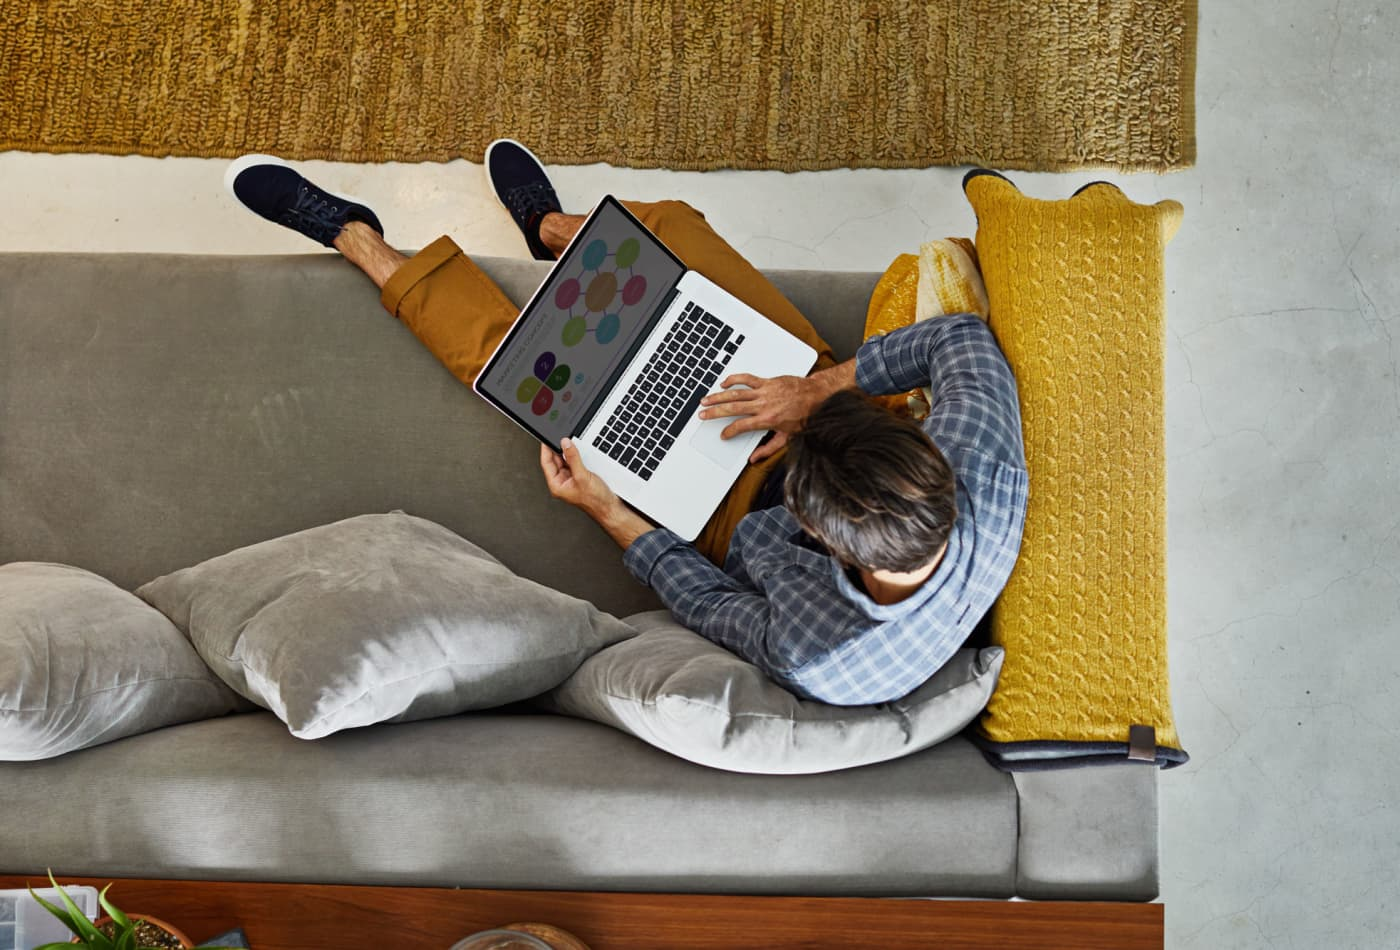 10 free online classes that will help you gain new skills to succeed in your career